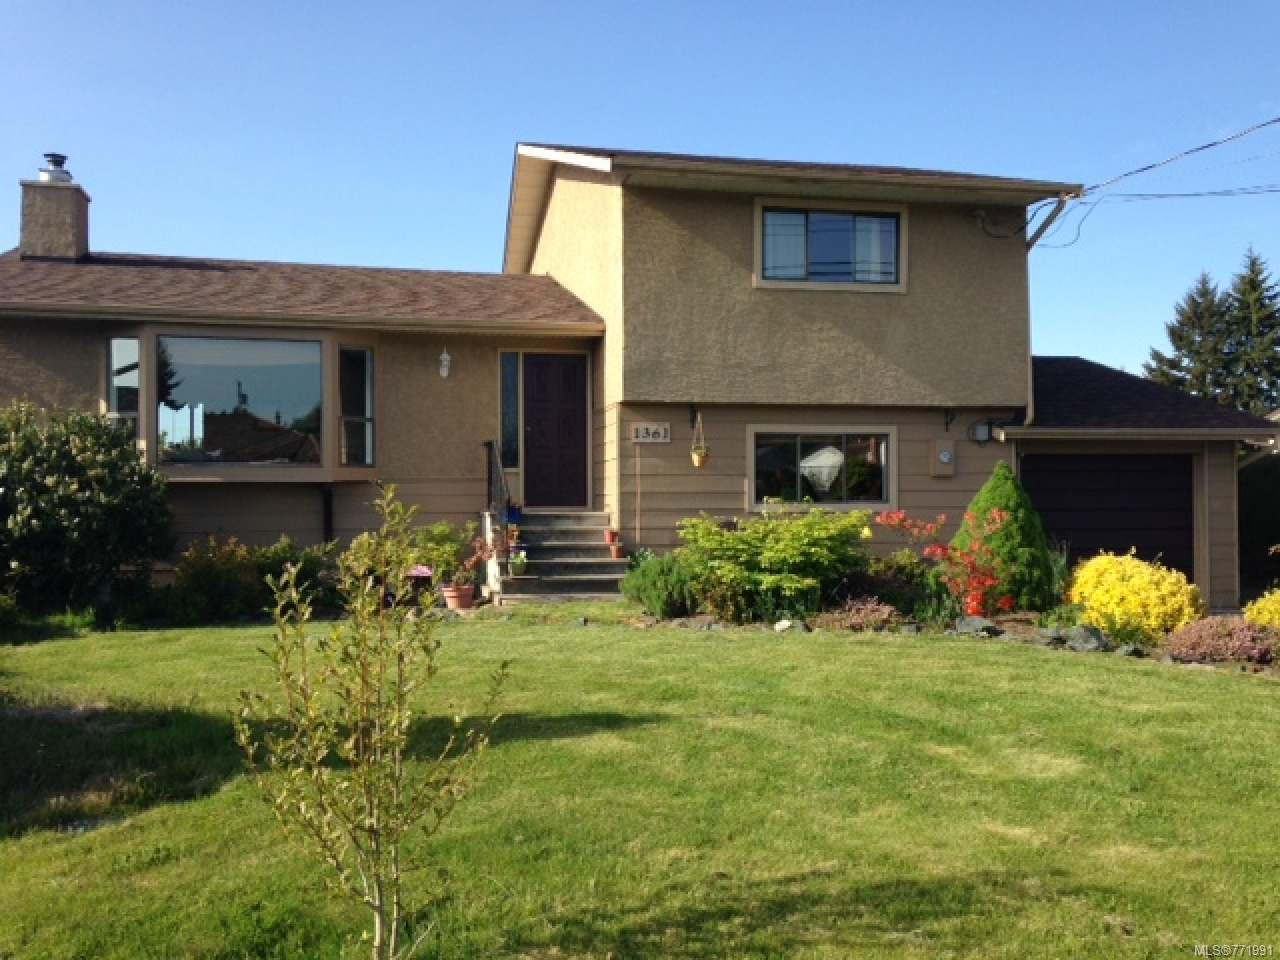 FEATURED LISTING: 1361 Greenwood Way PARKSVILLE